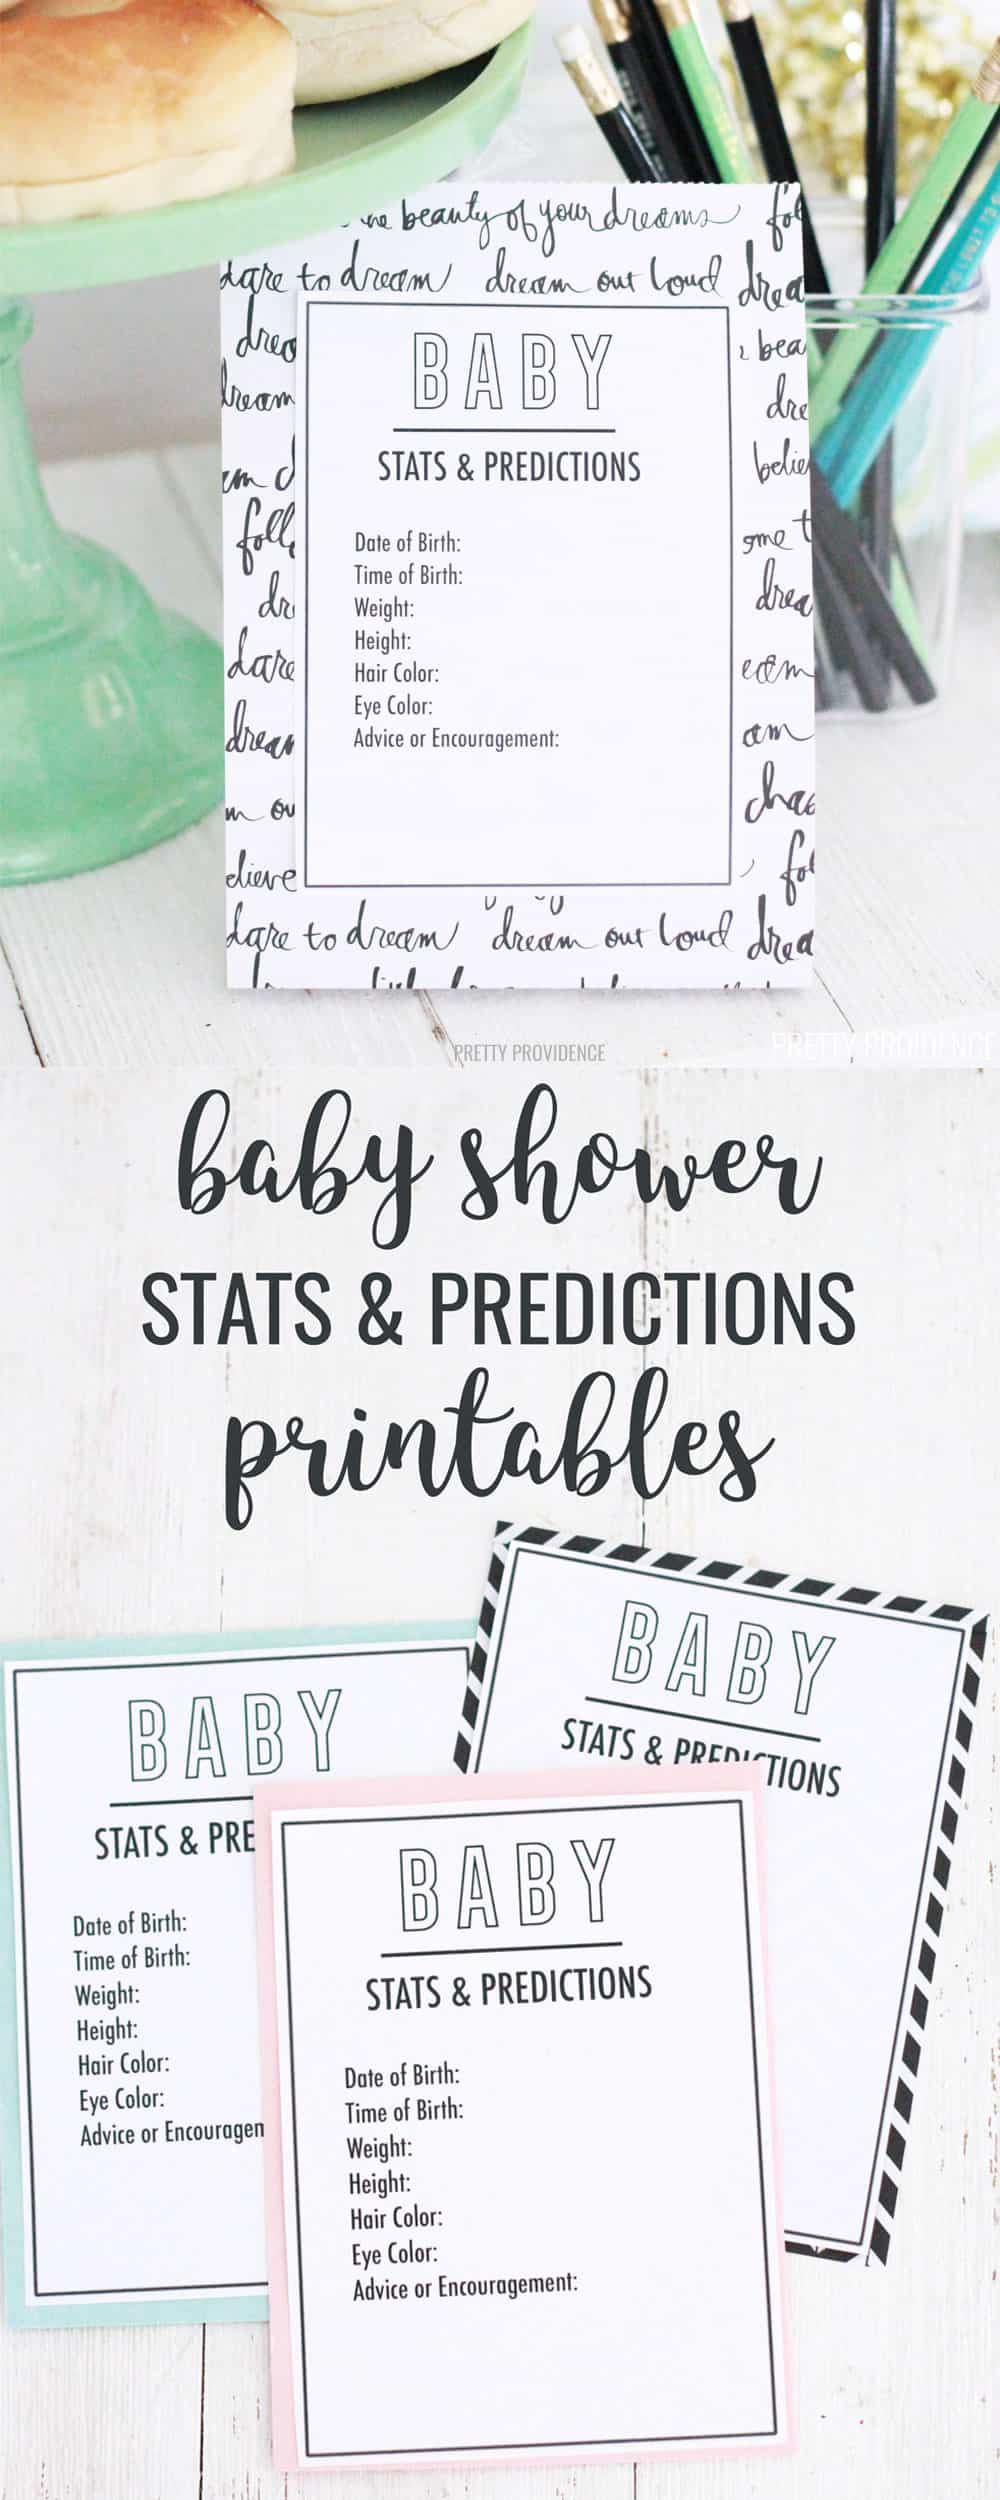 Free printable baby predictions cards with space for advice for the mom-to-be! This free printable baby shower game is cute and will match any theme. #babyshower #babyshowerideas #freeprintable #statsandpredictions #babyshowerprintable #babyshowergames #freebabyshowergames #cheapbabyshower #babyshowerstats #babystats #babypredictionscards